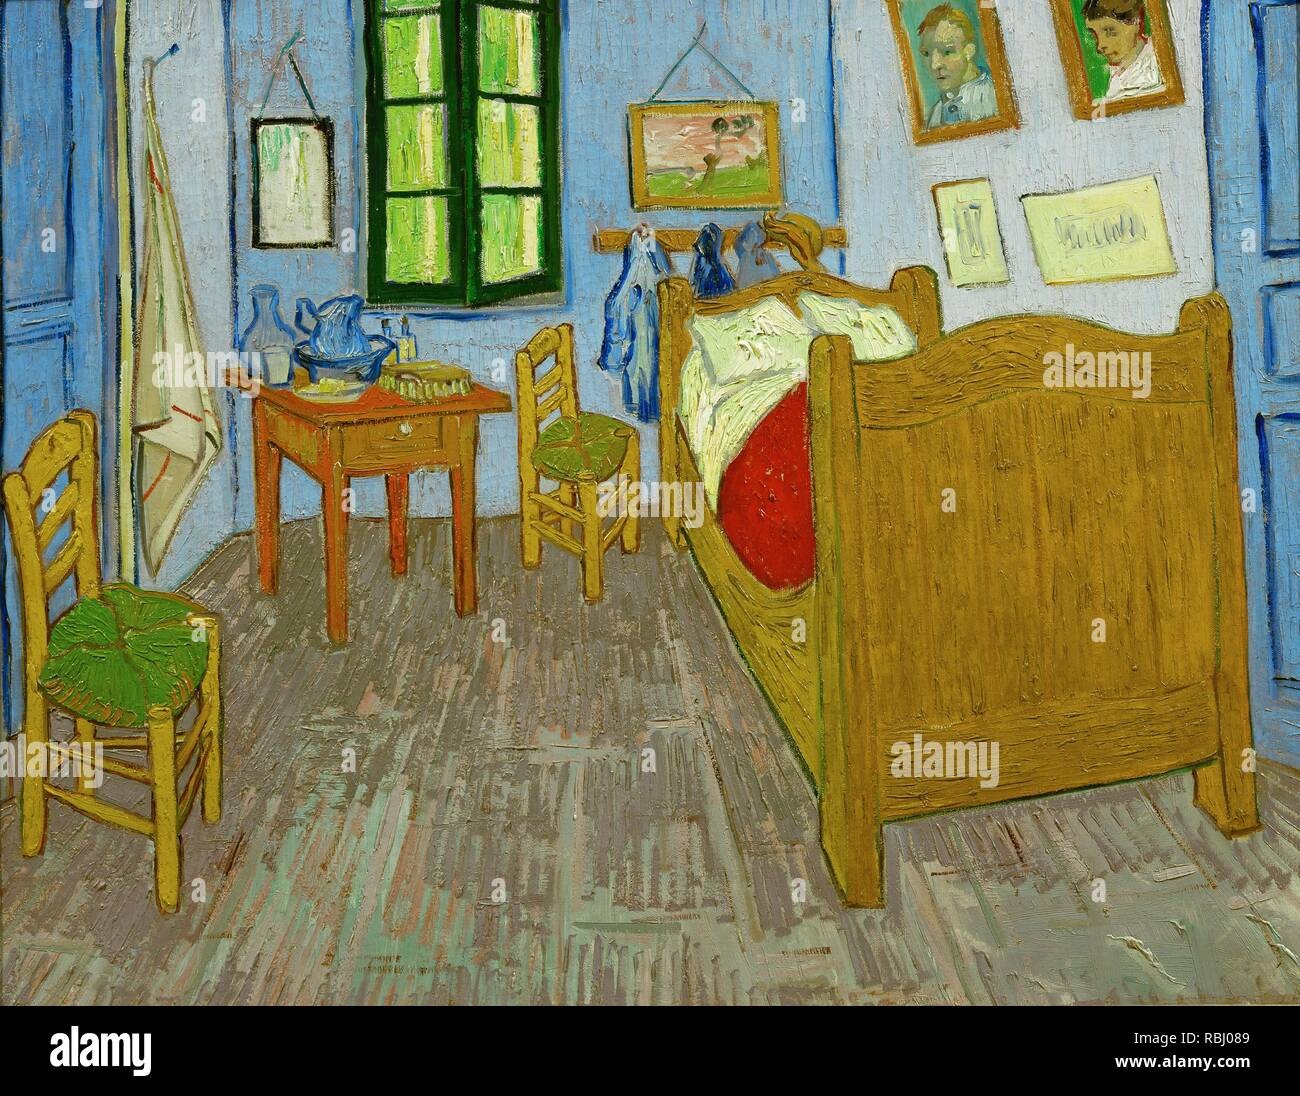 Schlafzimmer In Arles Stockfotos & Schlafzimmer In Arles Bilder - Alamy